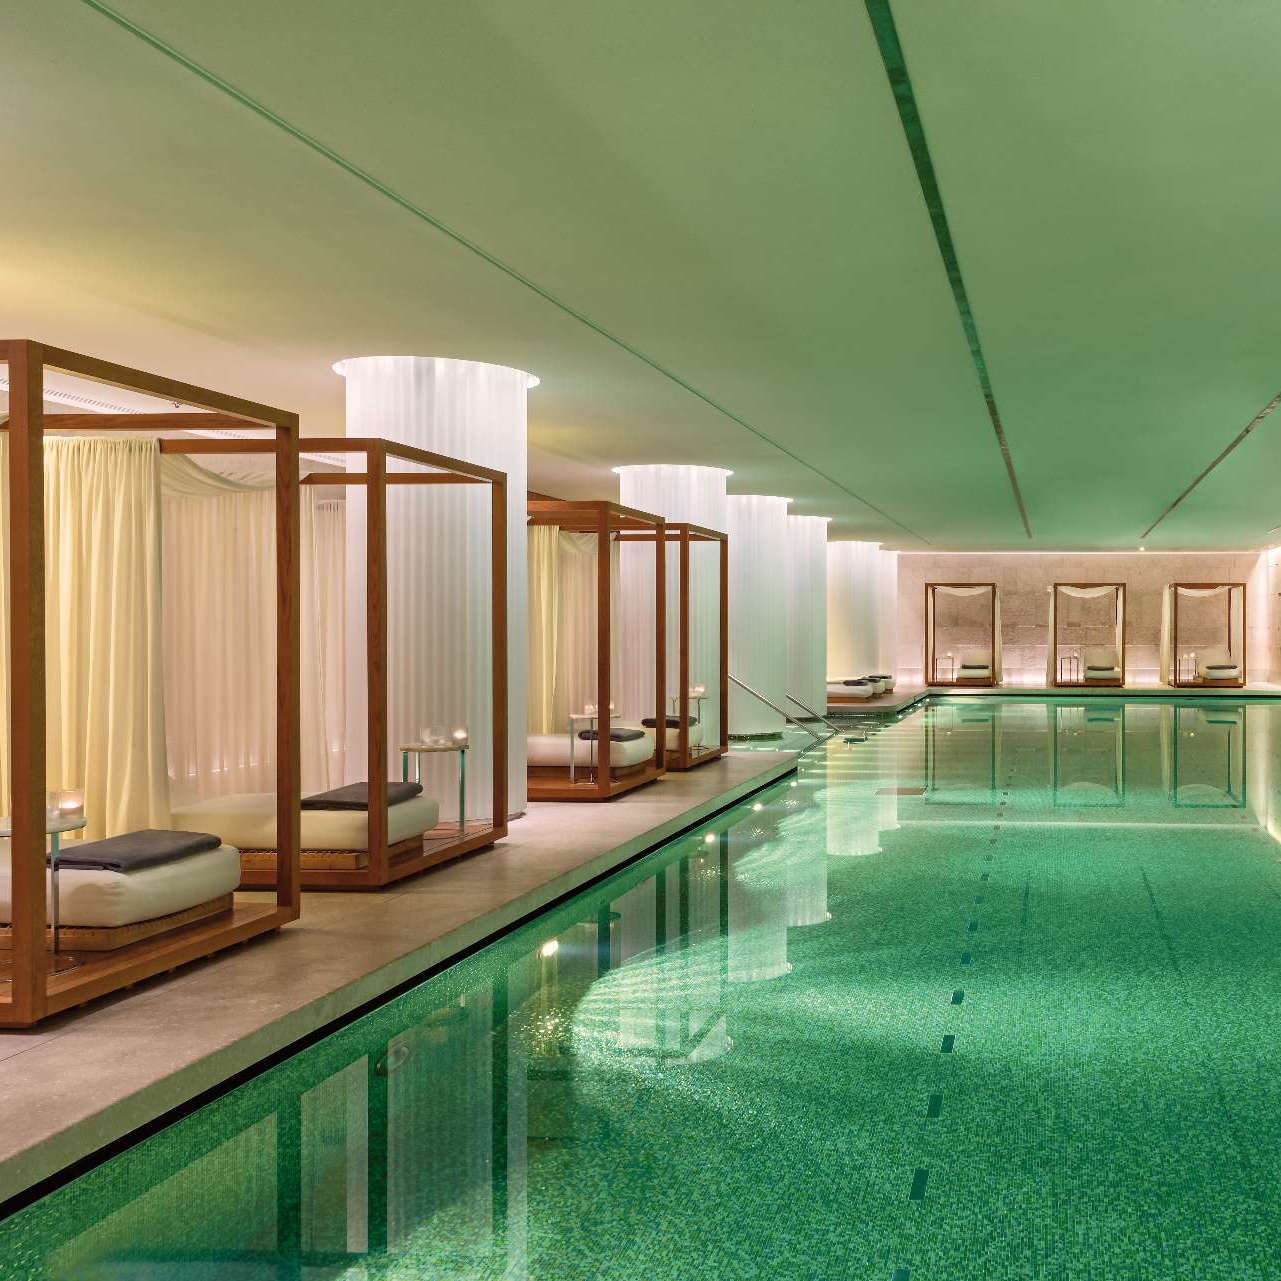 Unwind in luxury at the BVLGARI spa